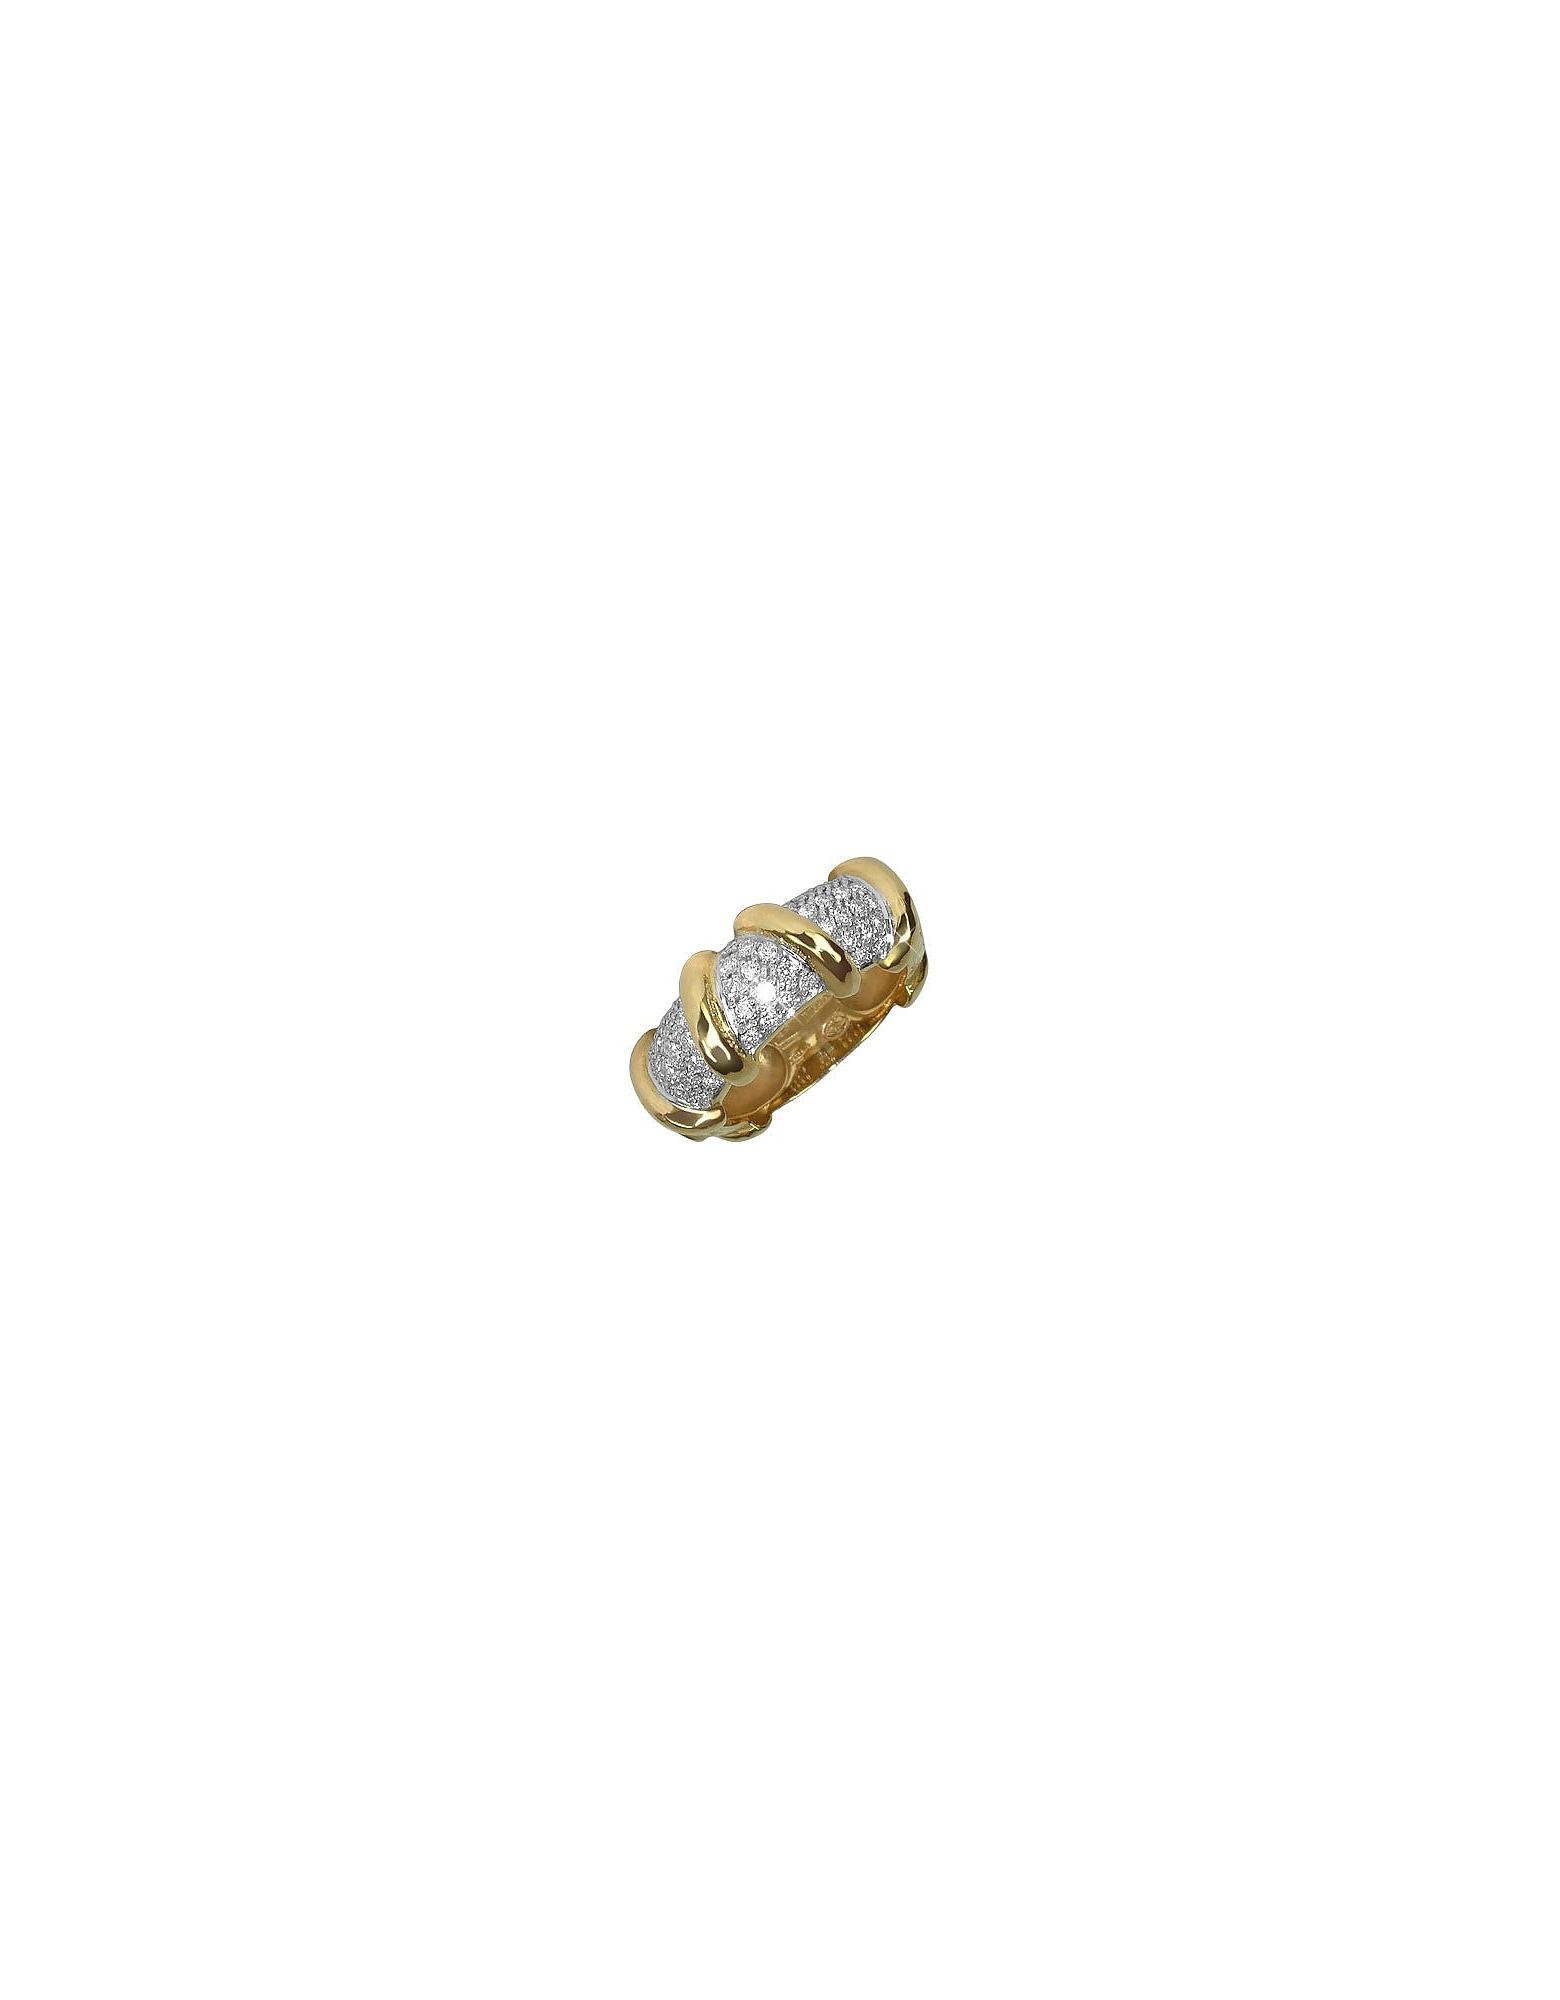 Torrini Designer Rings, Twister - 18K Yellow Gold Diamond Ring